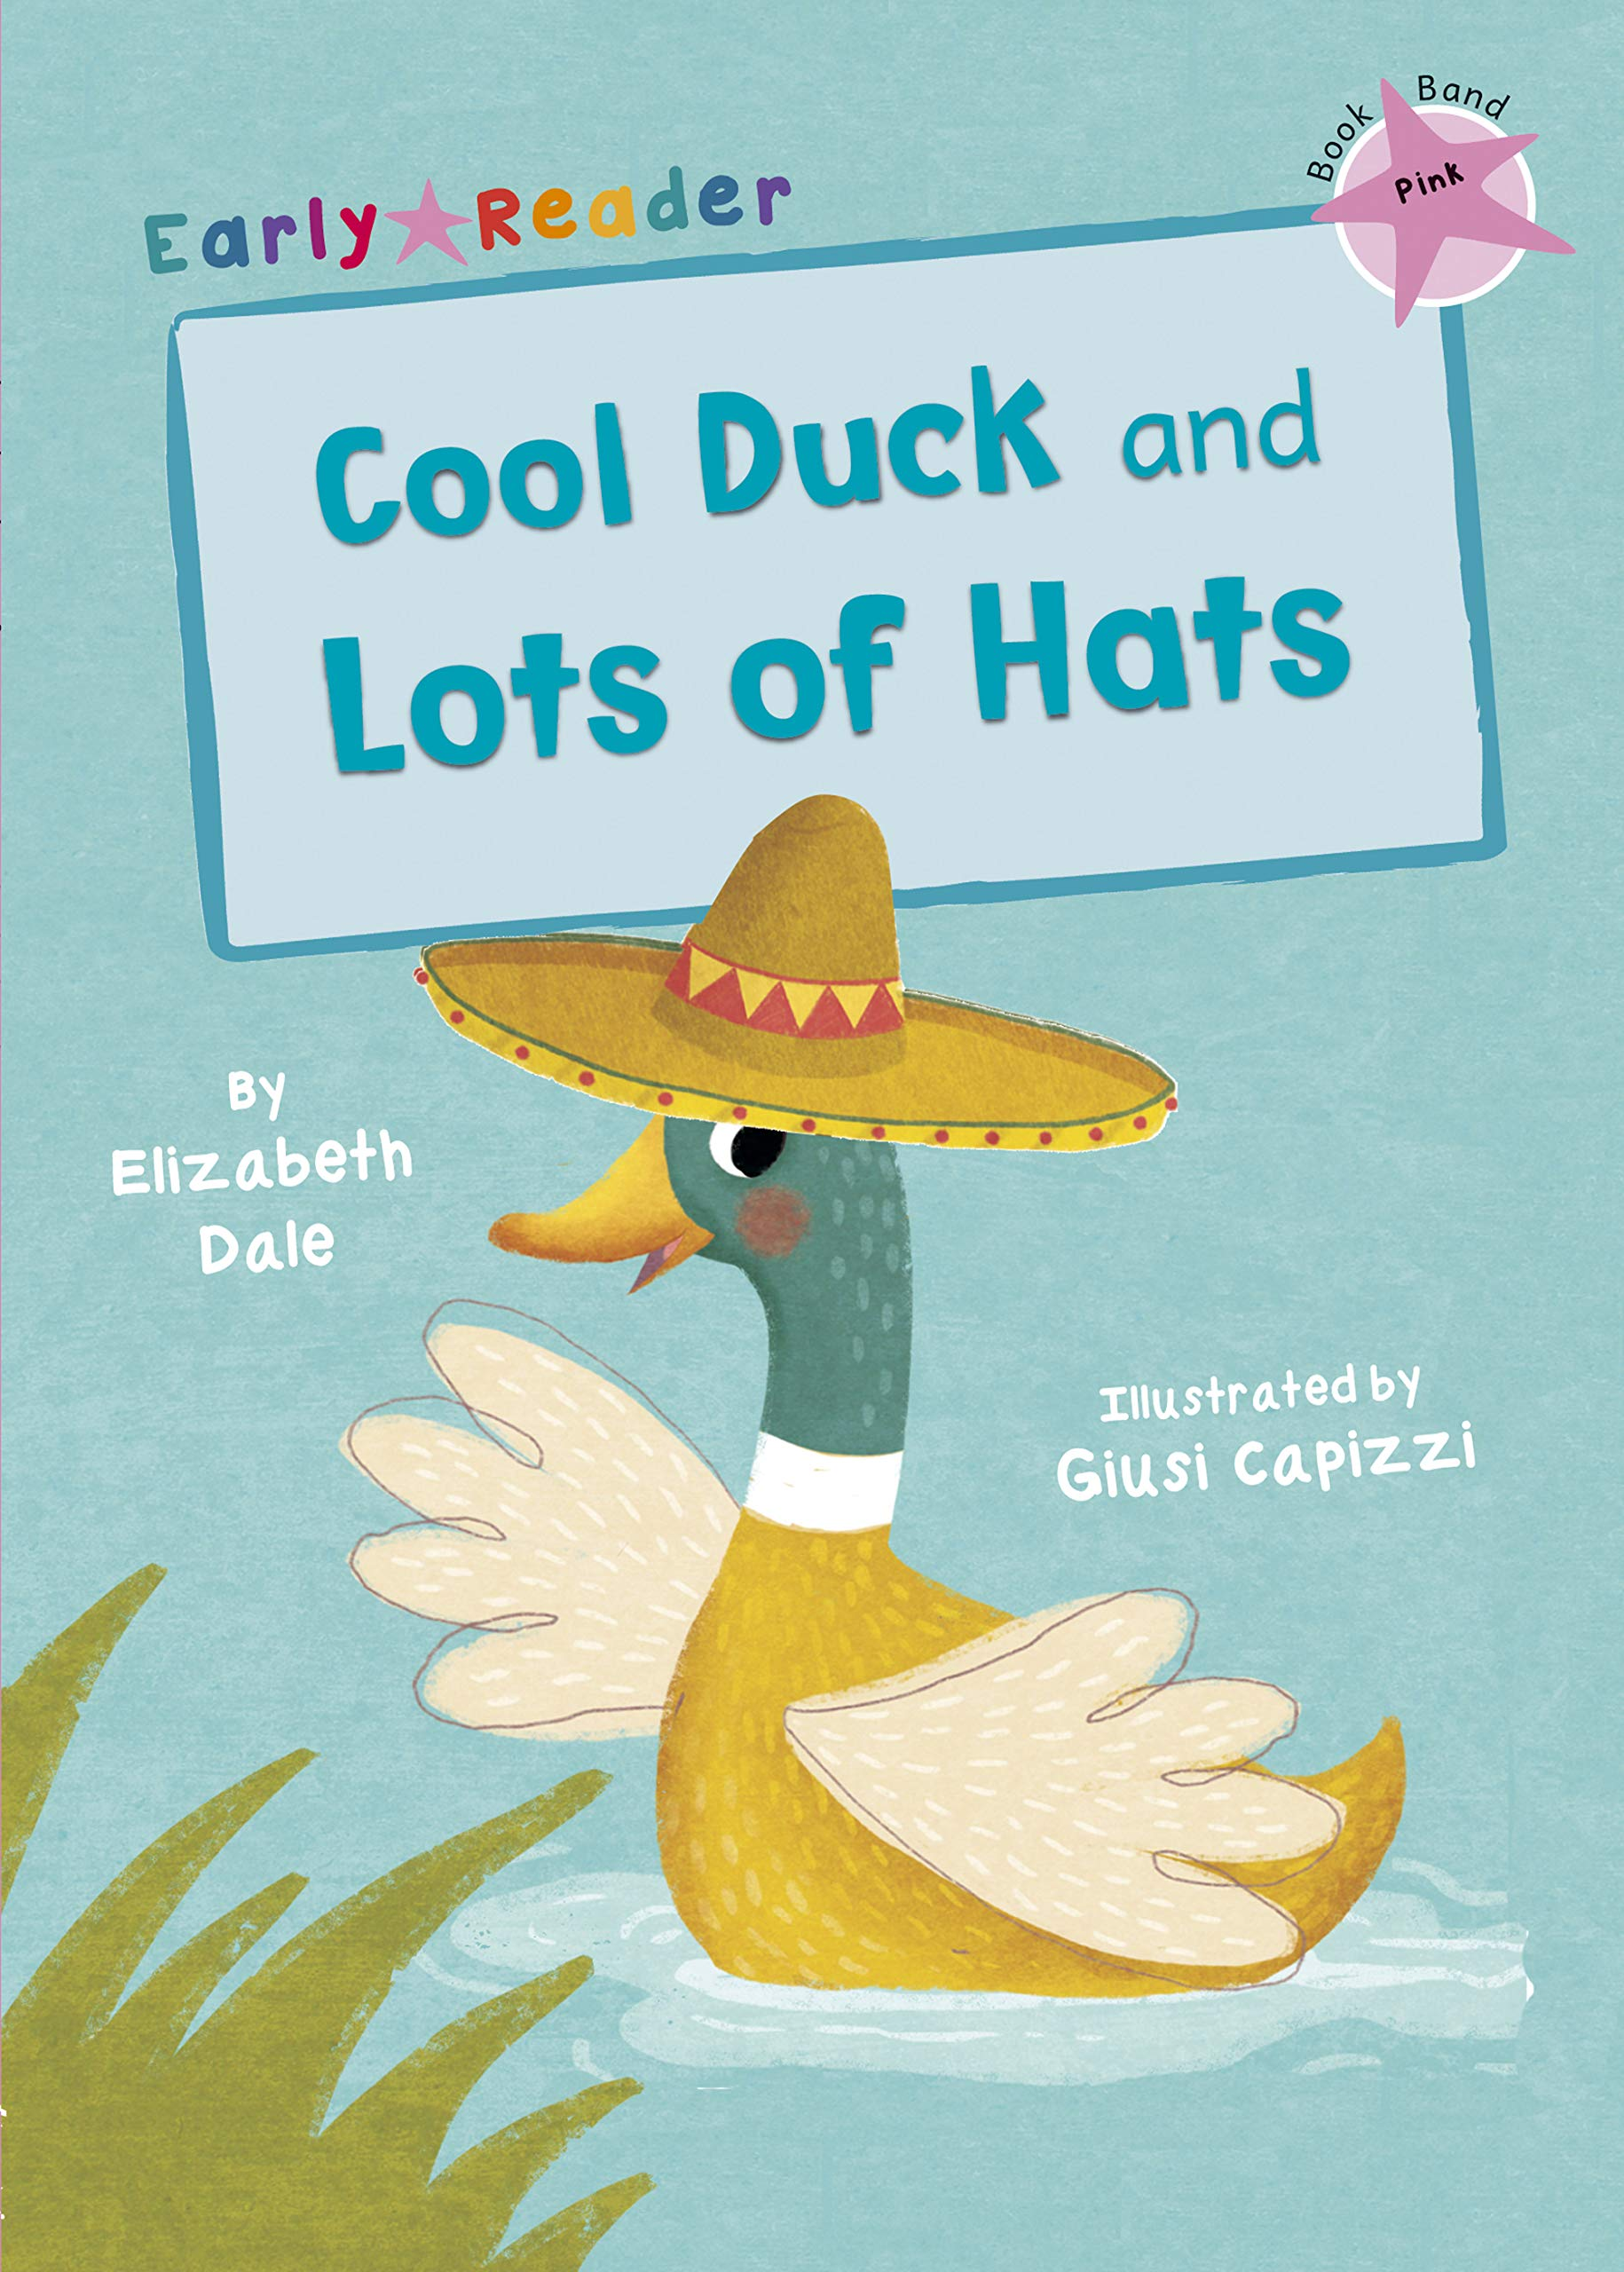 Cool duck & lots of hats / Elizabeth Dale ; illustrated by Giusi Capizzi. image cover